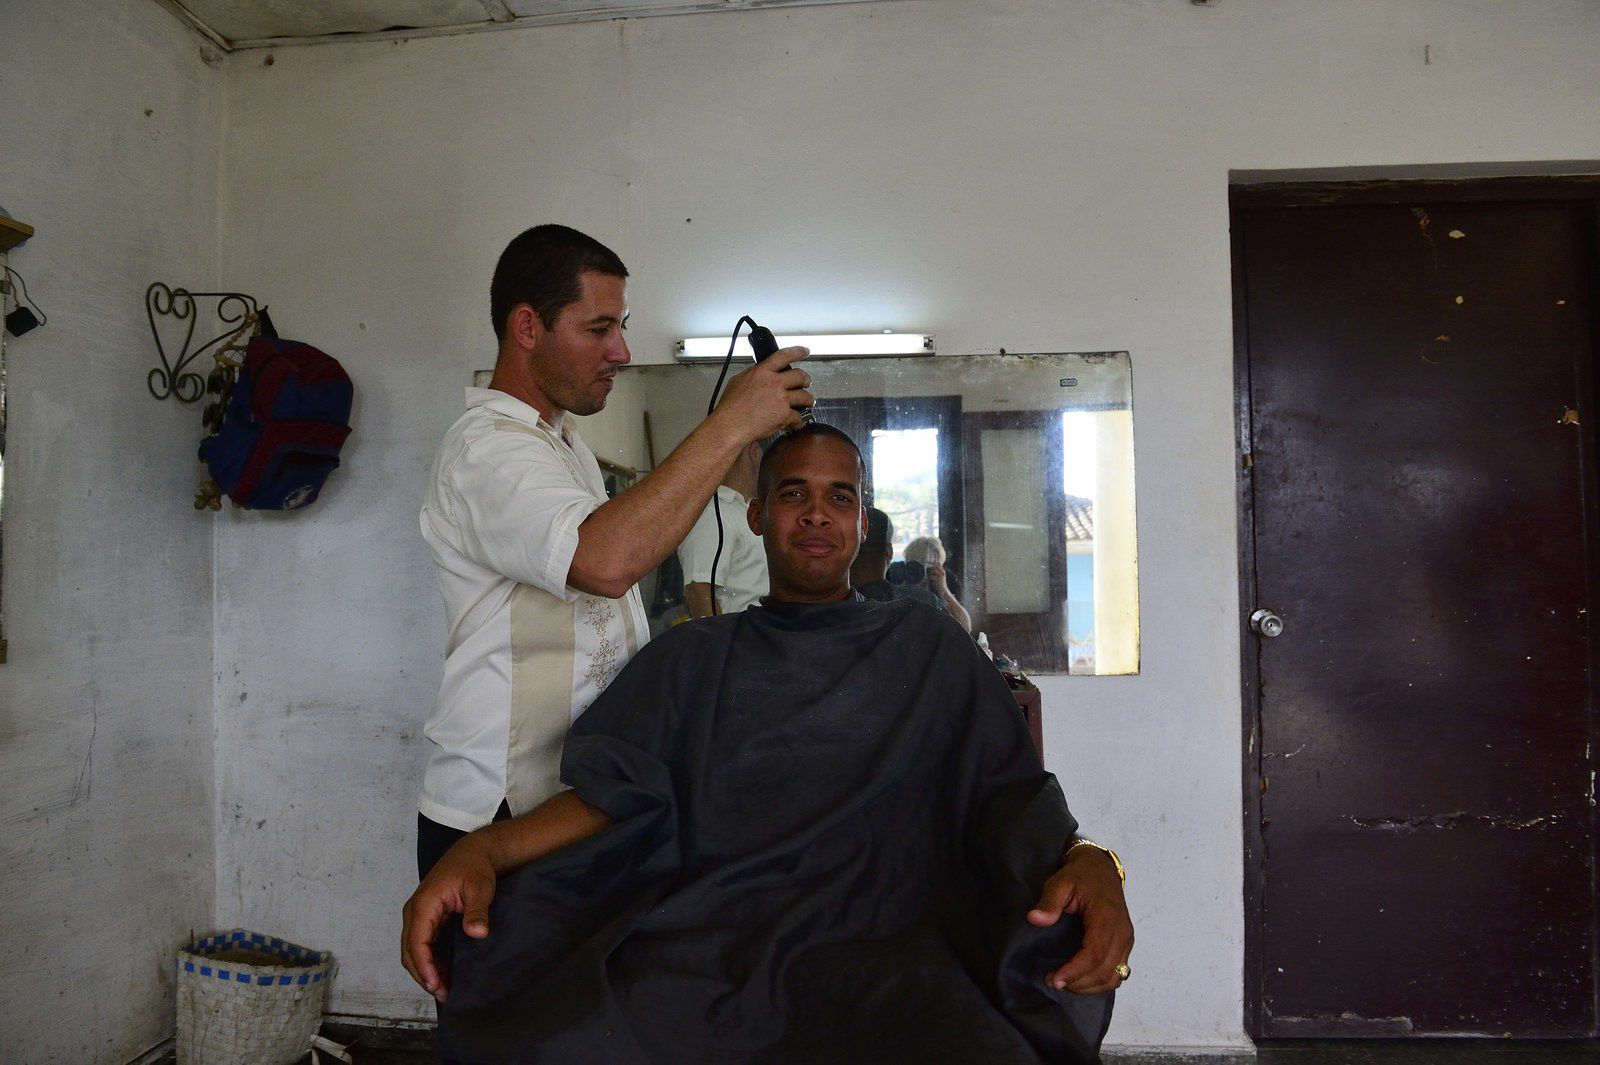 cuba the easy way of live-by albi